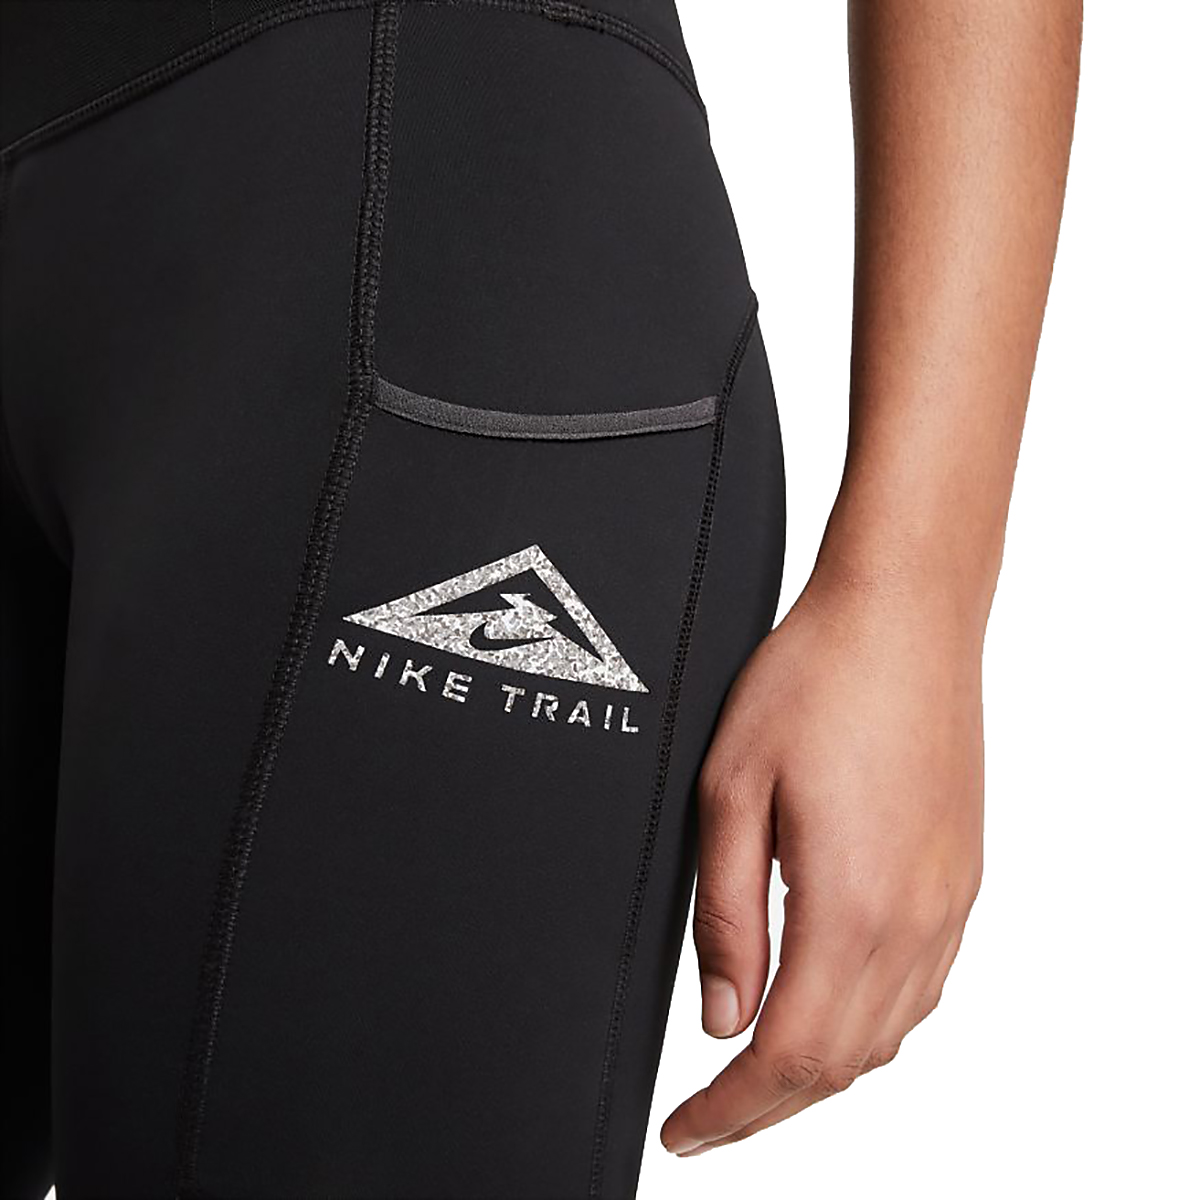 Women's Nike Epic Luxe Trail Running Tights - Color: Black/Dark Smoke Grey/Reflective Silver - Size: XS, Black/Dark Smoke Grey/Reflective Silver, large, image 4